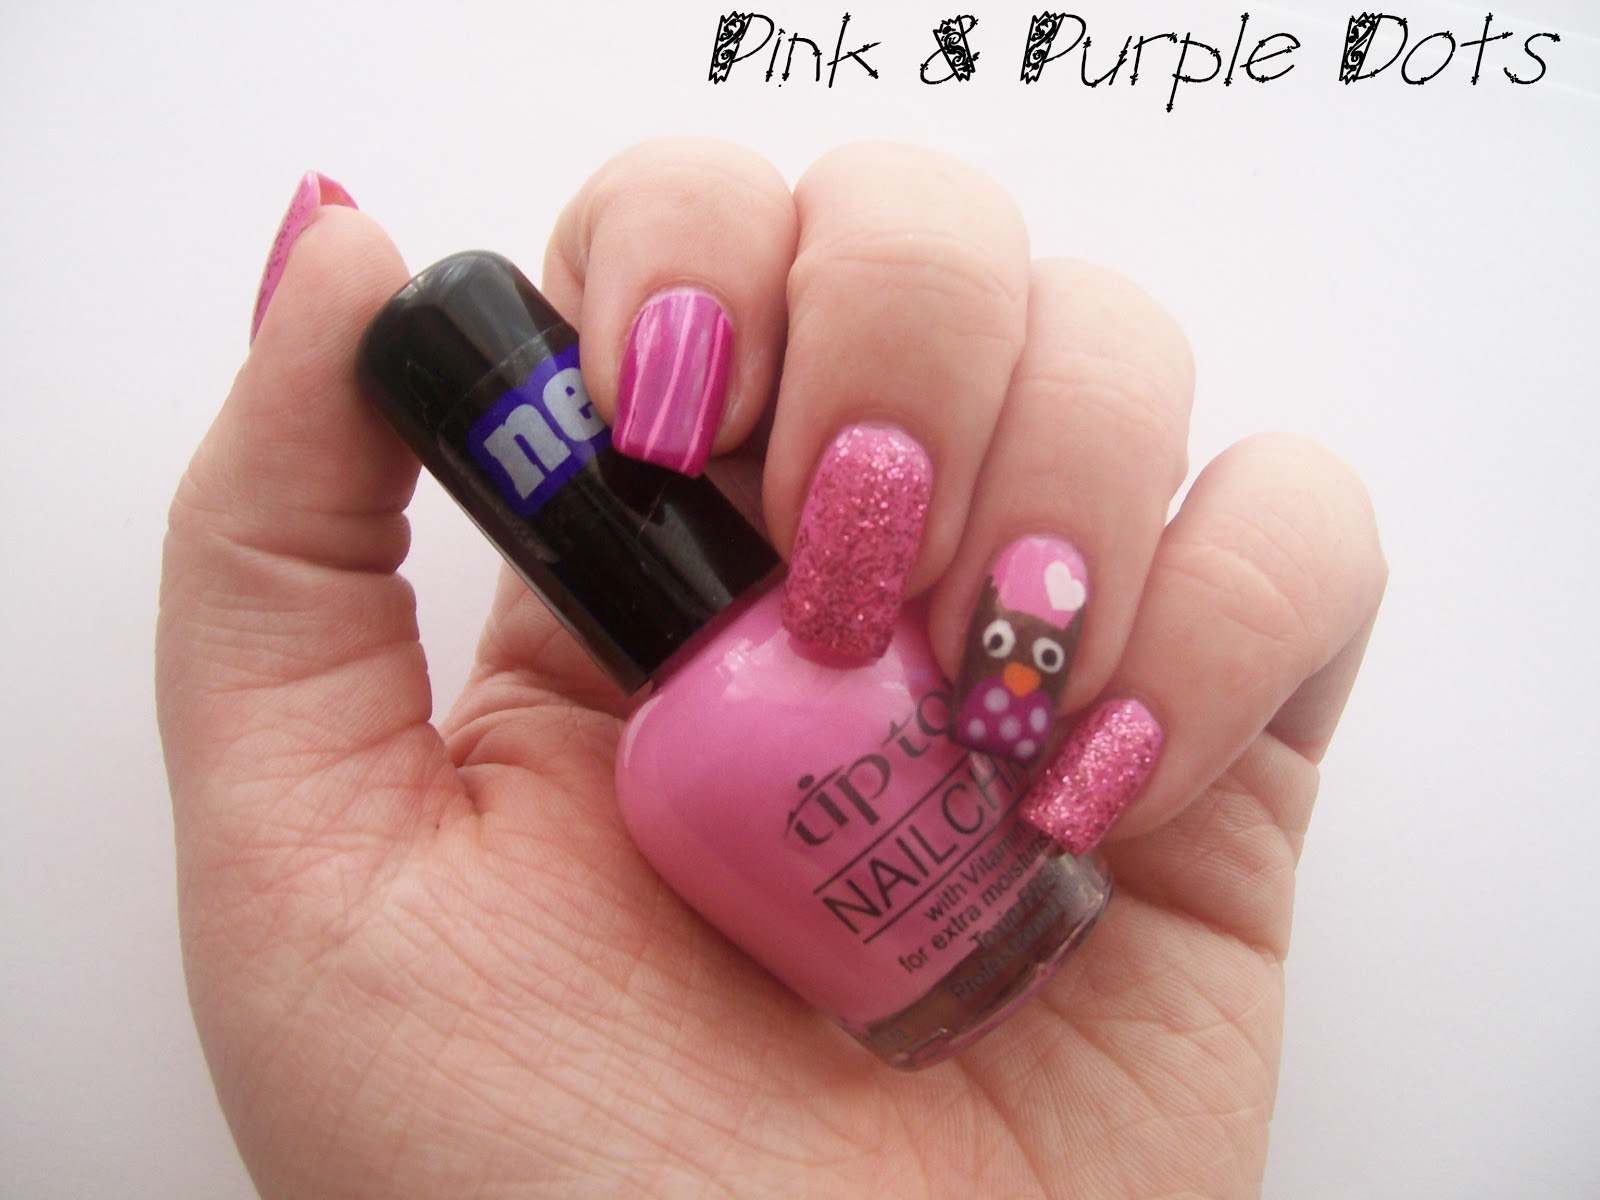 Pink & Purple Dots: Valentines Day Nail Art - Owl Love You